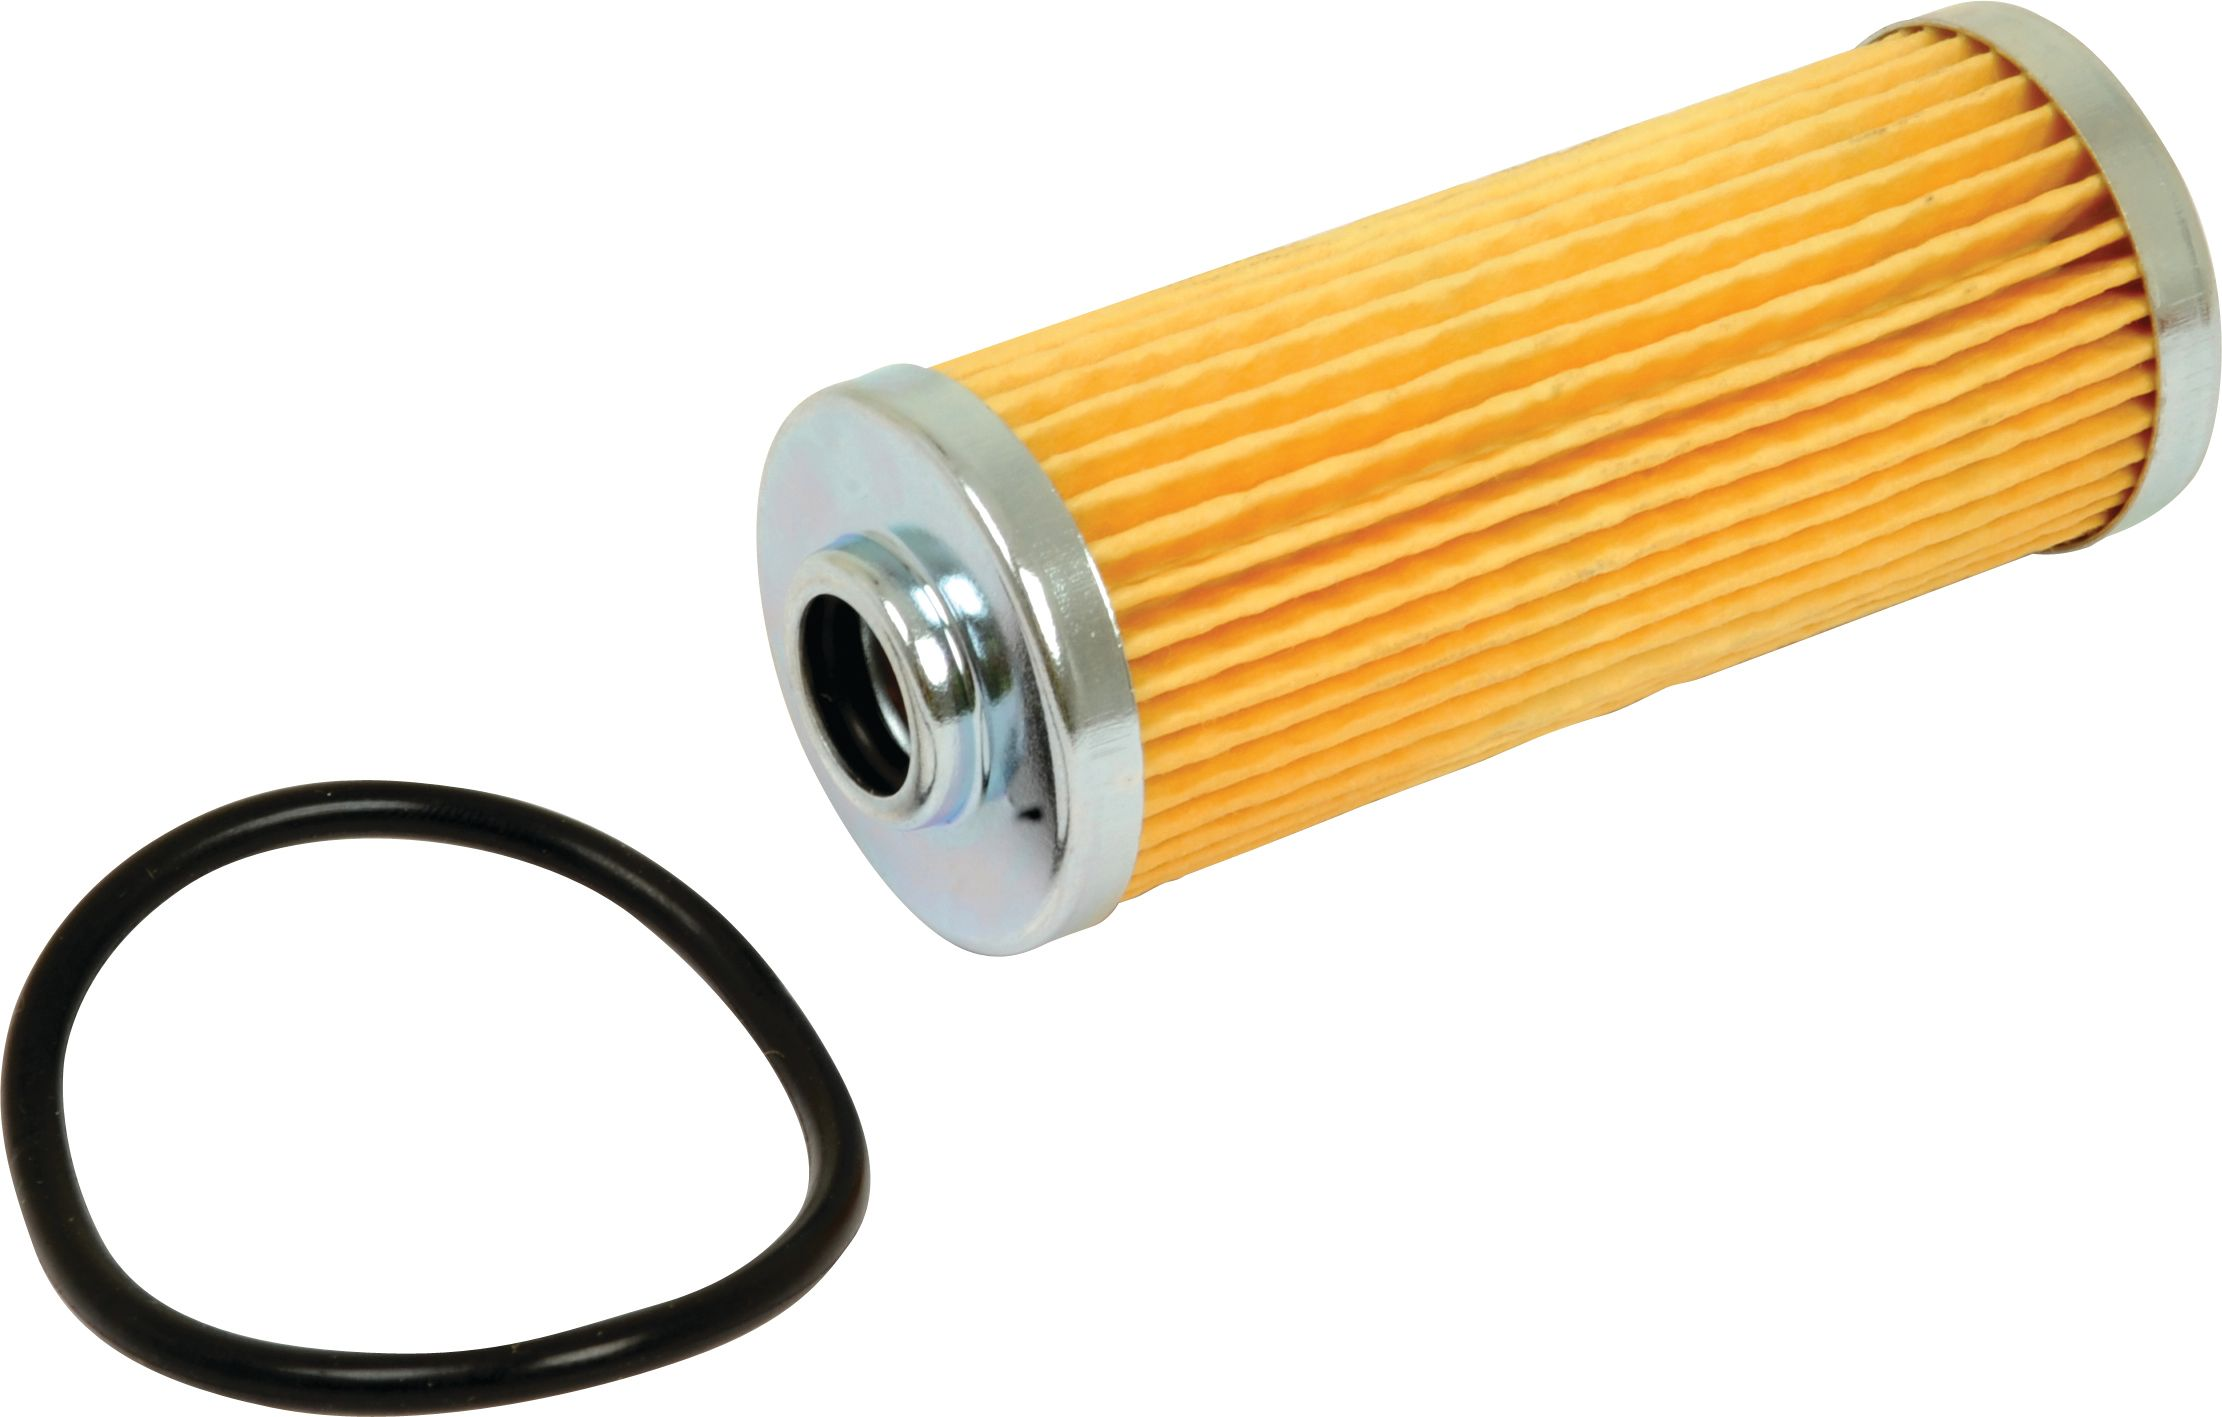 Find And Order Spare Parts In Minutes John Deere Fuel Filters Filter Ff5259 109078